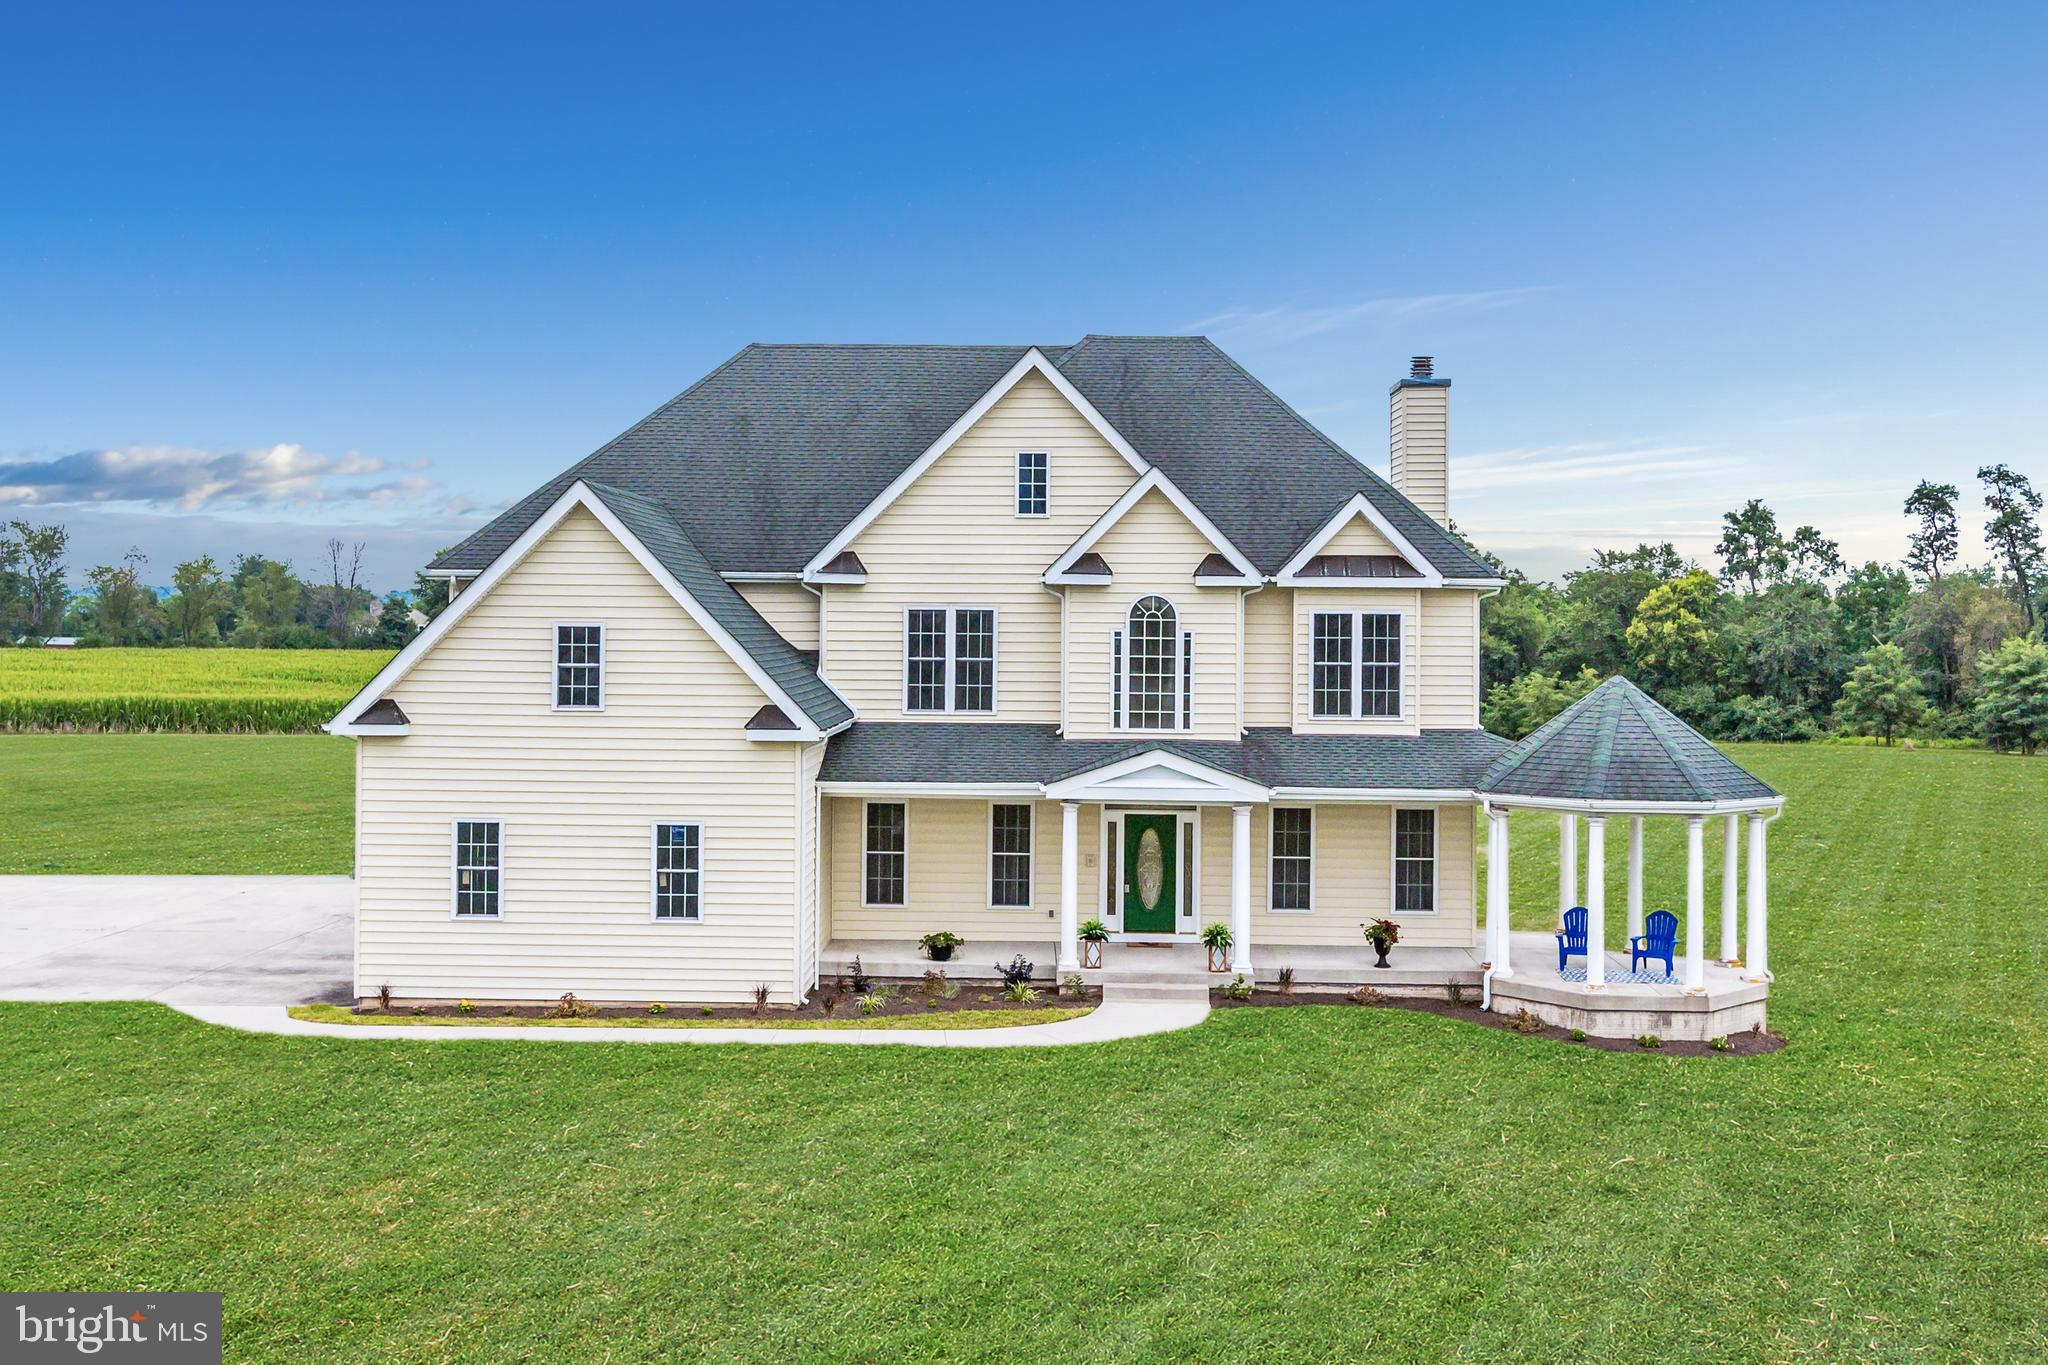 Turn-key and Gorgeous! Custom home sits on over 19 acres with views in every direction enjoying the